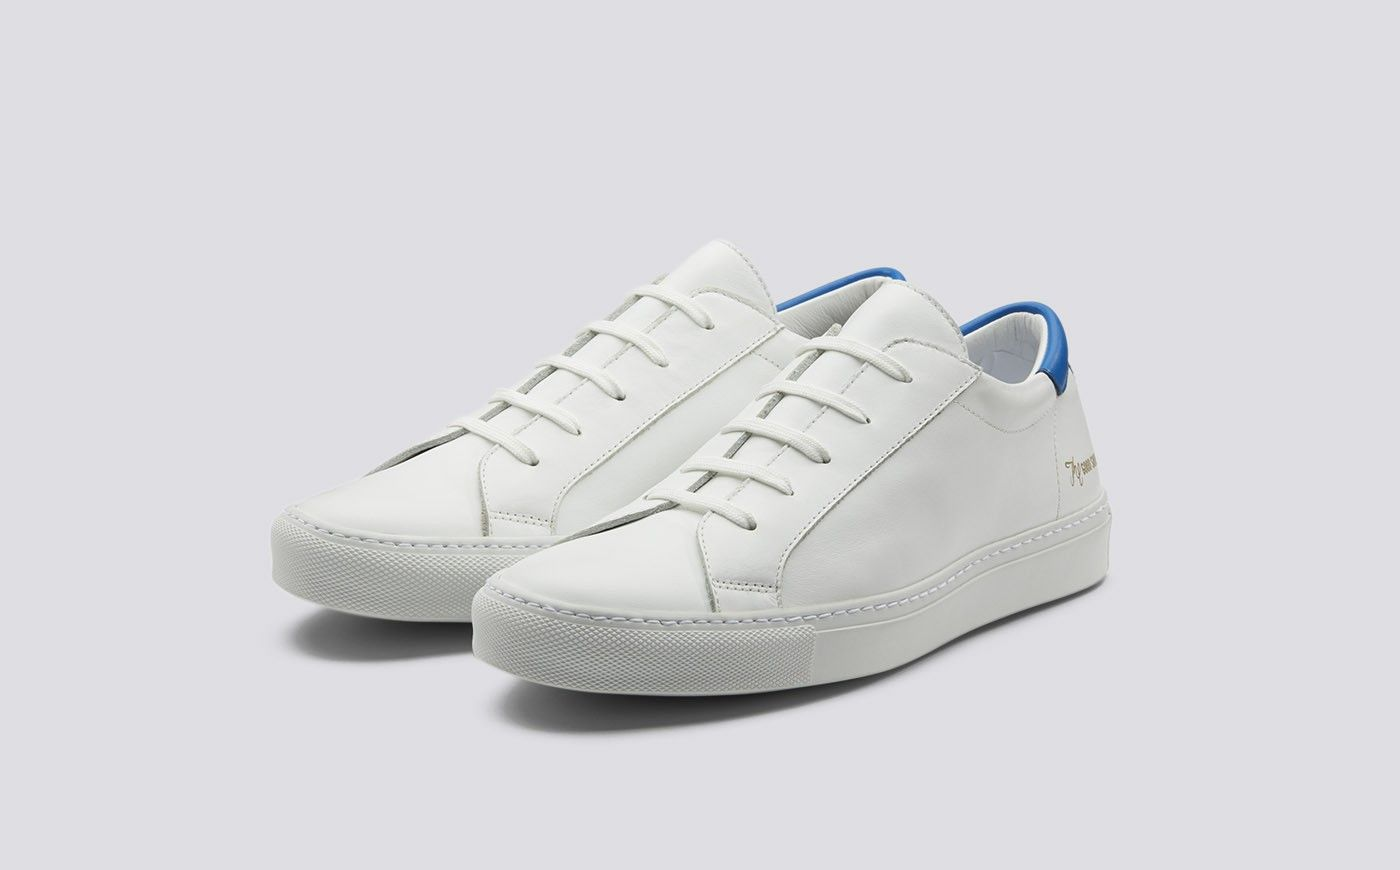 TN Ankle  Sneaker BlueWhite Athletic Shoe